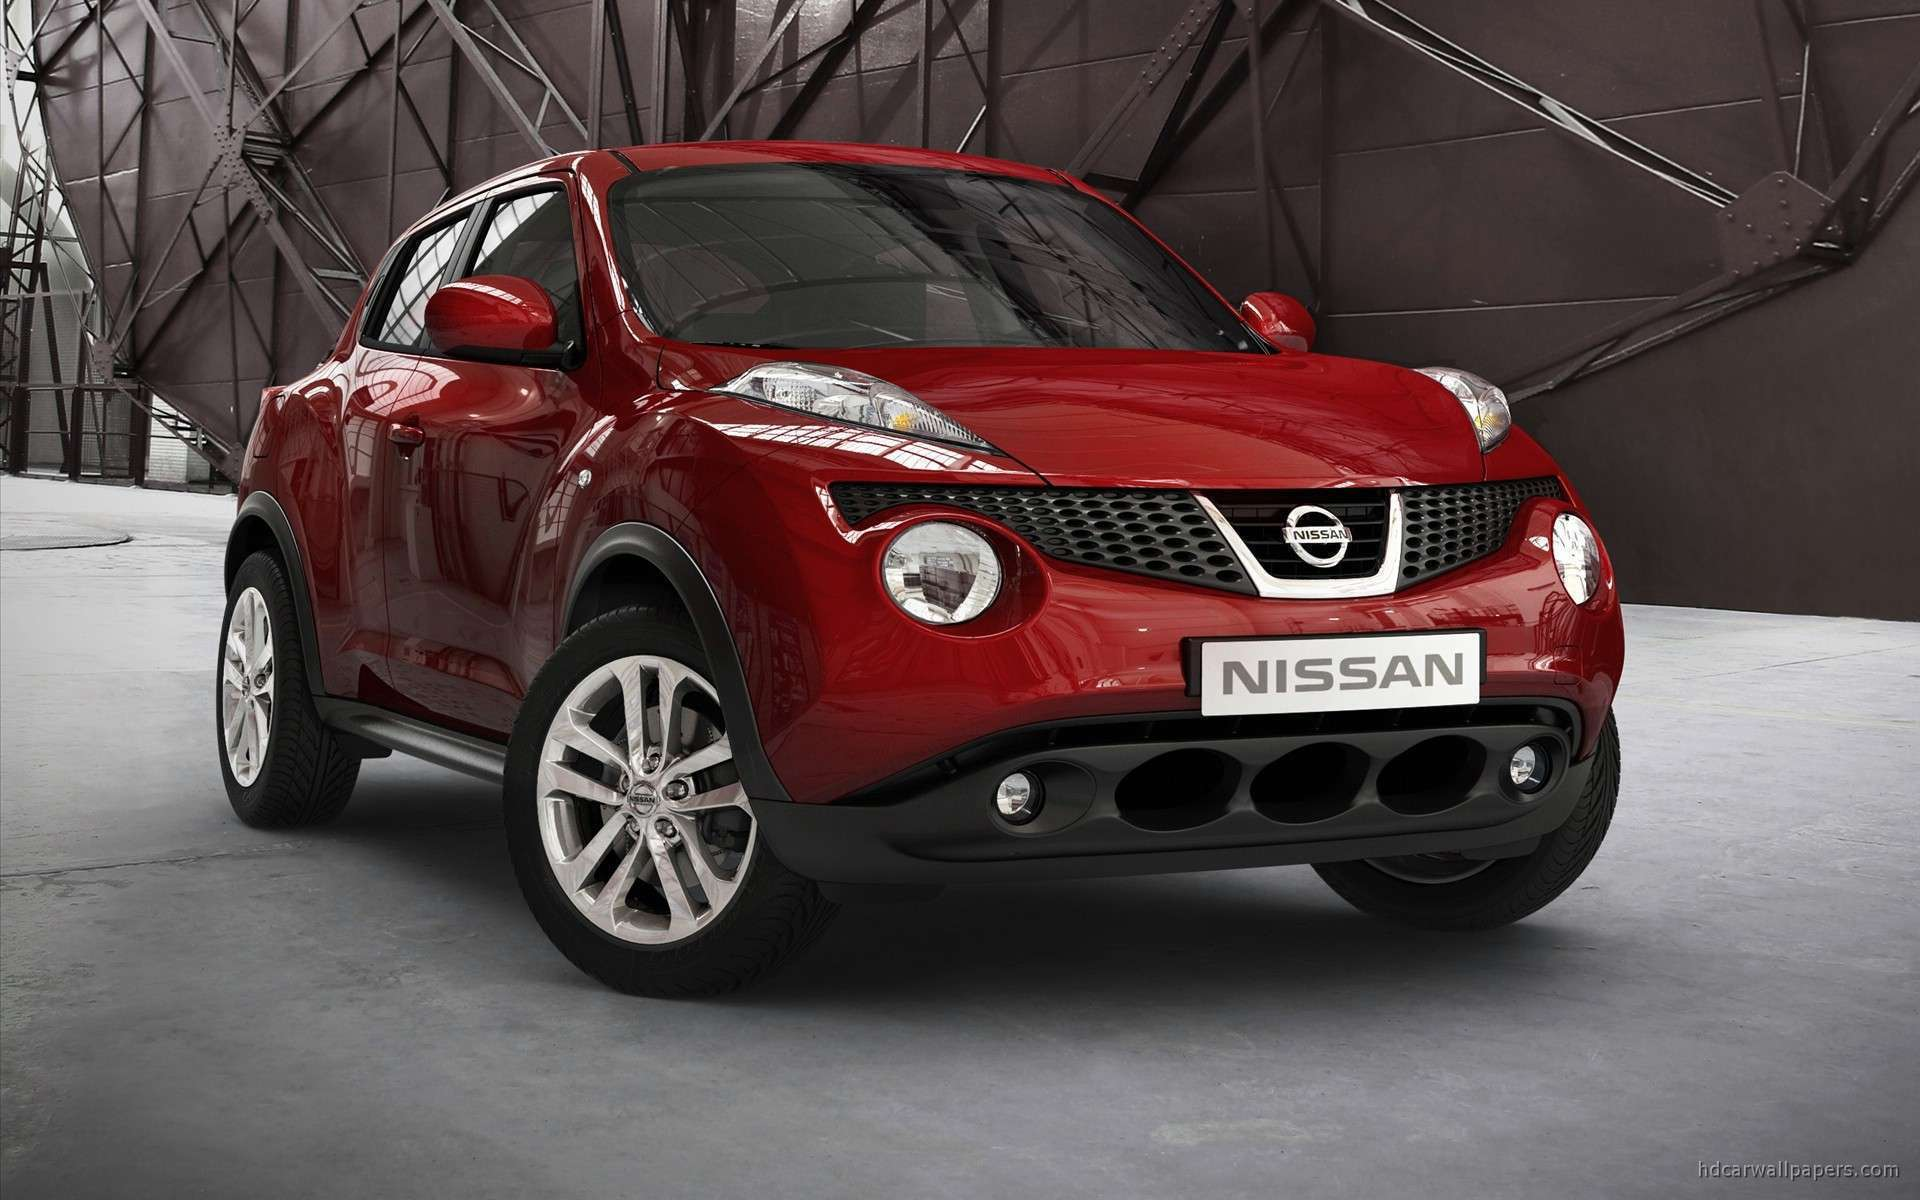 2011 nissan juke hd wallpapers hd car wallpapers. Black Bedroom Furniture Sets. Home Design Ideas